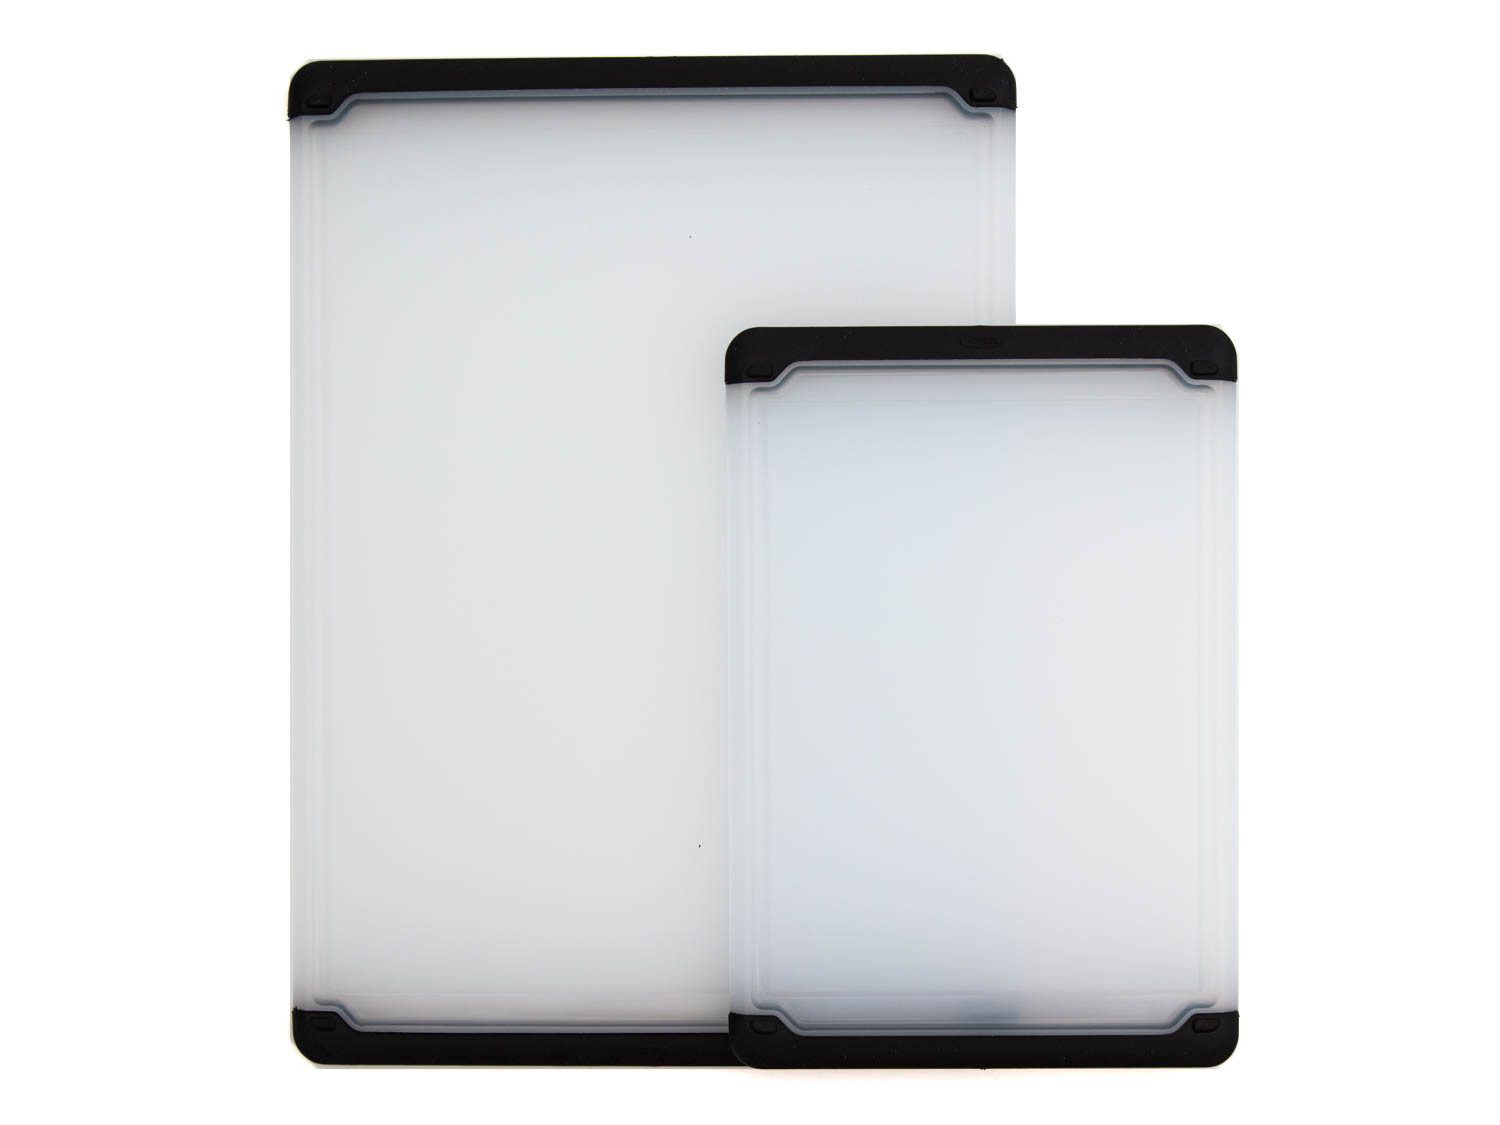 Oxo's plastic cutting board come in three sizes, but only the small and medium (shown here) can be purchased as a pair.